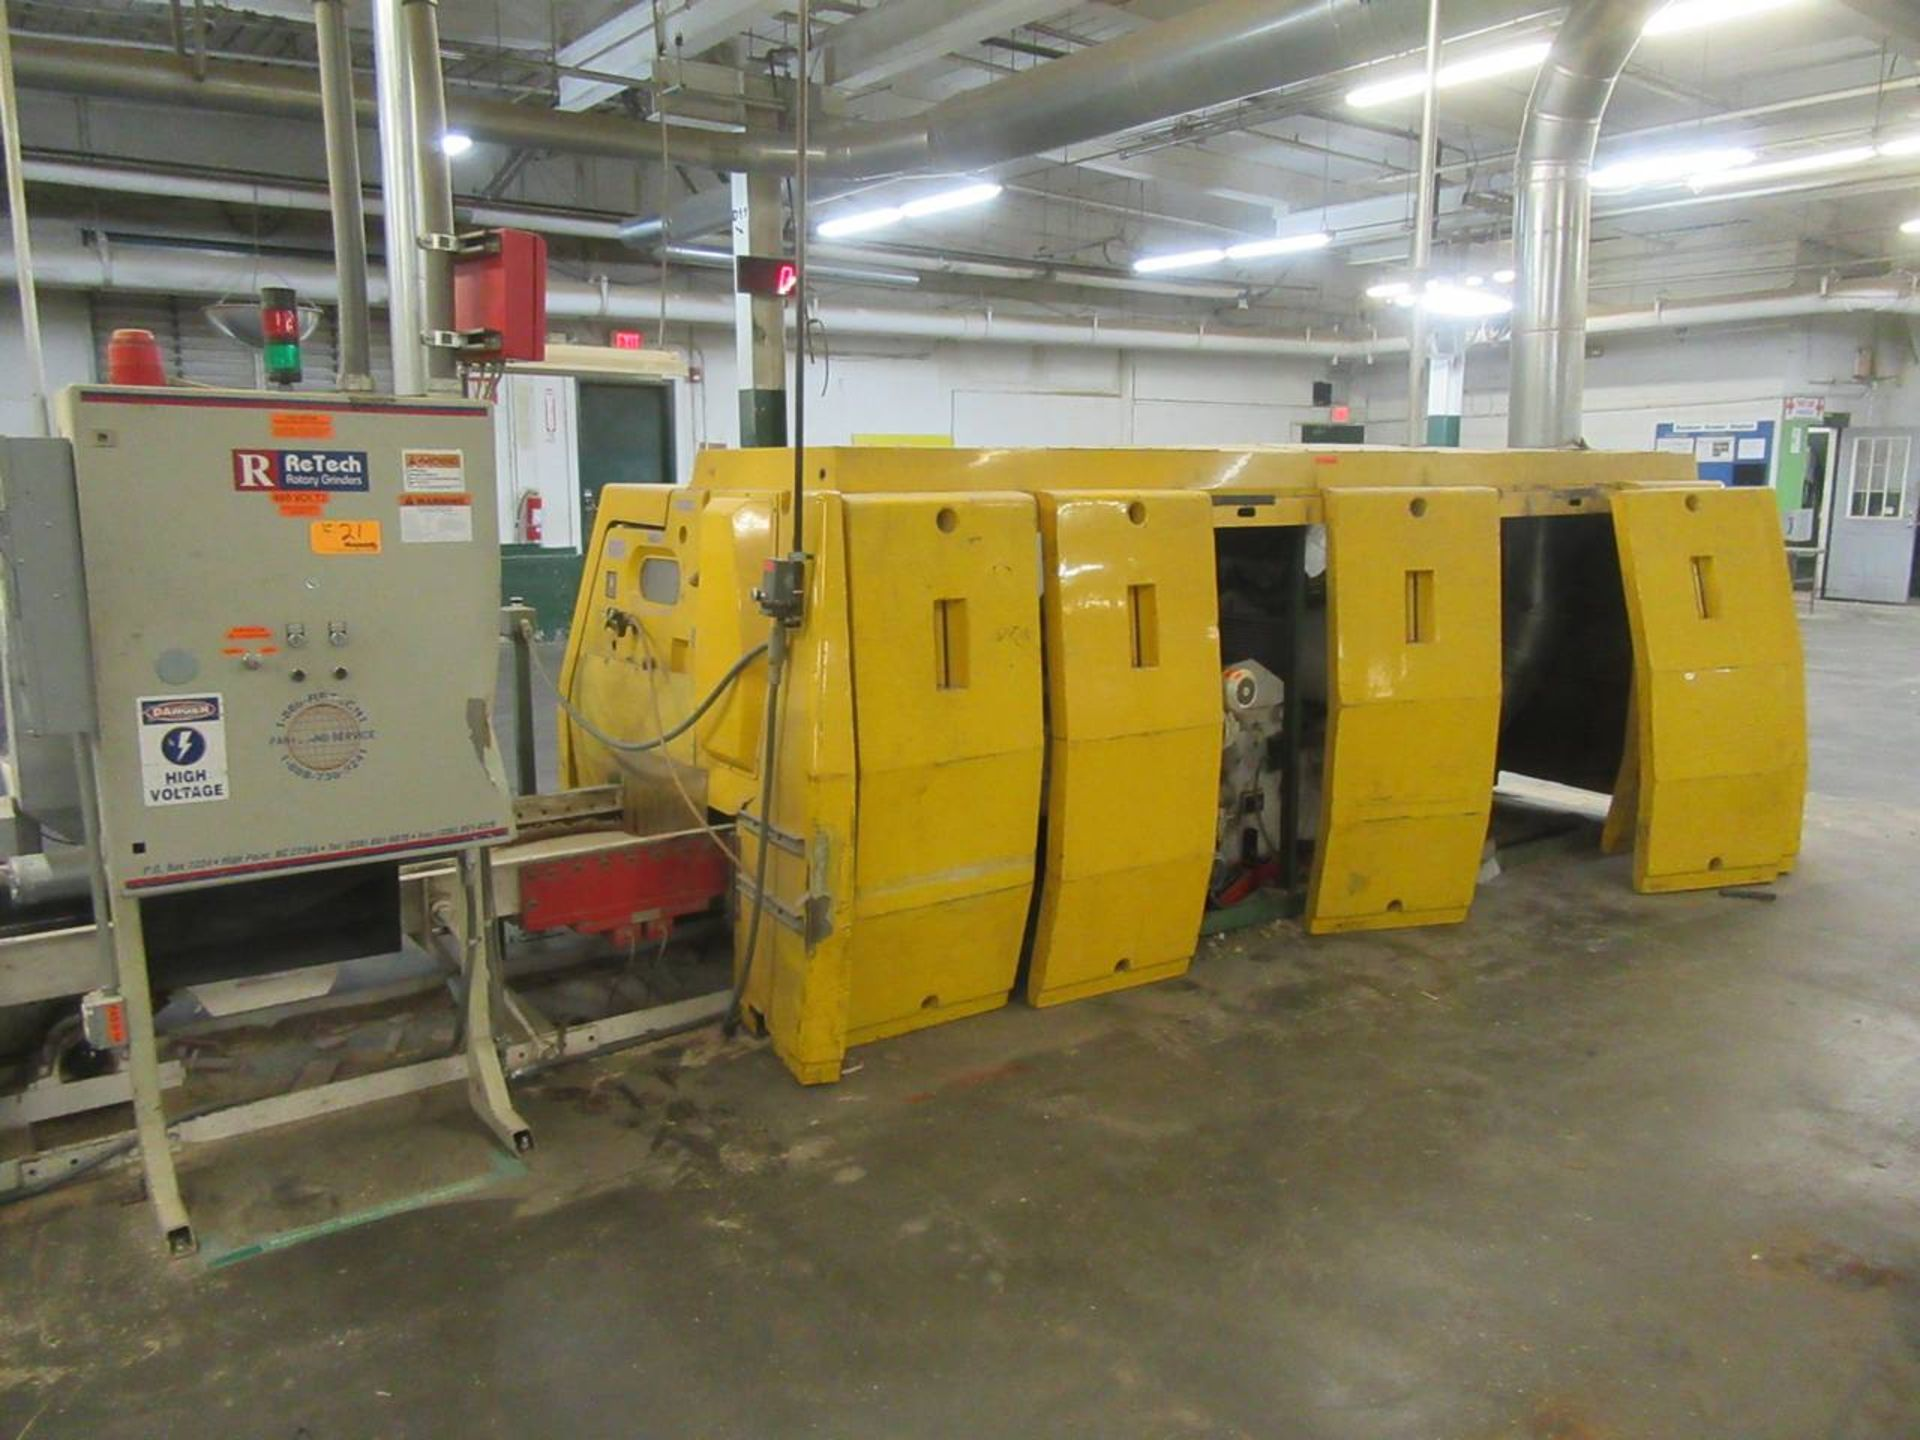 Lot 21 - 2003 Re Tech Grinder